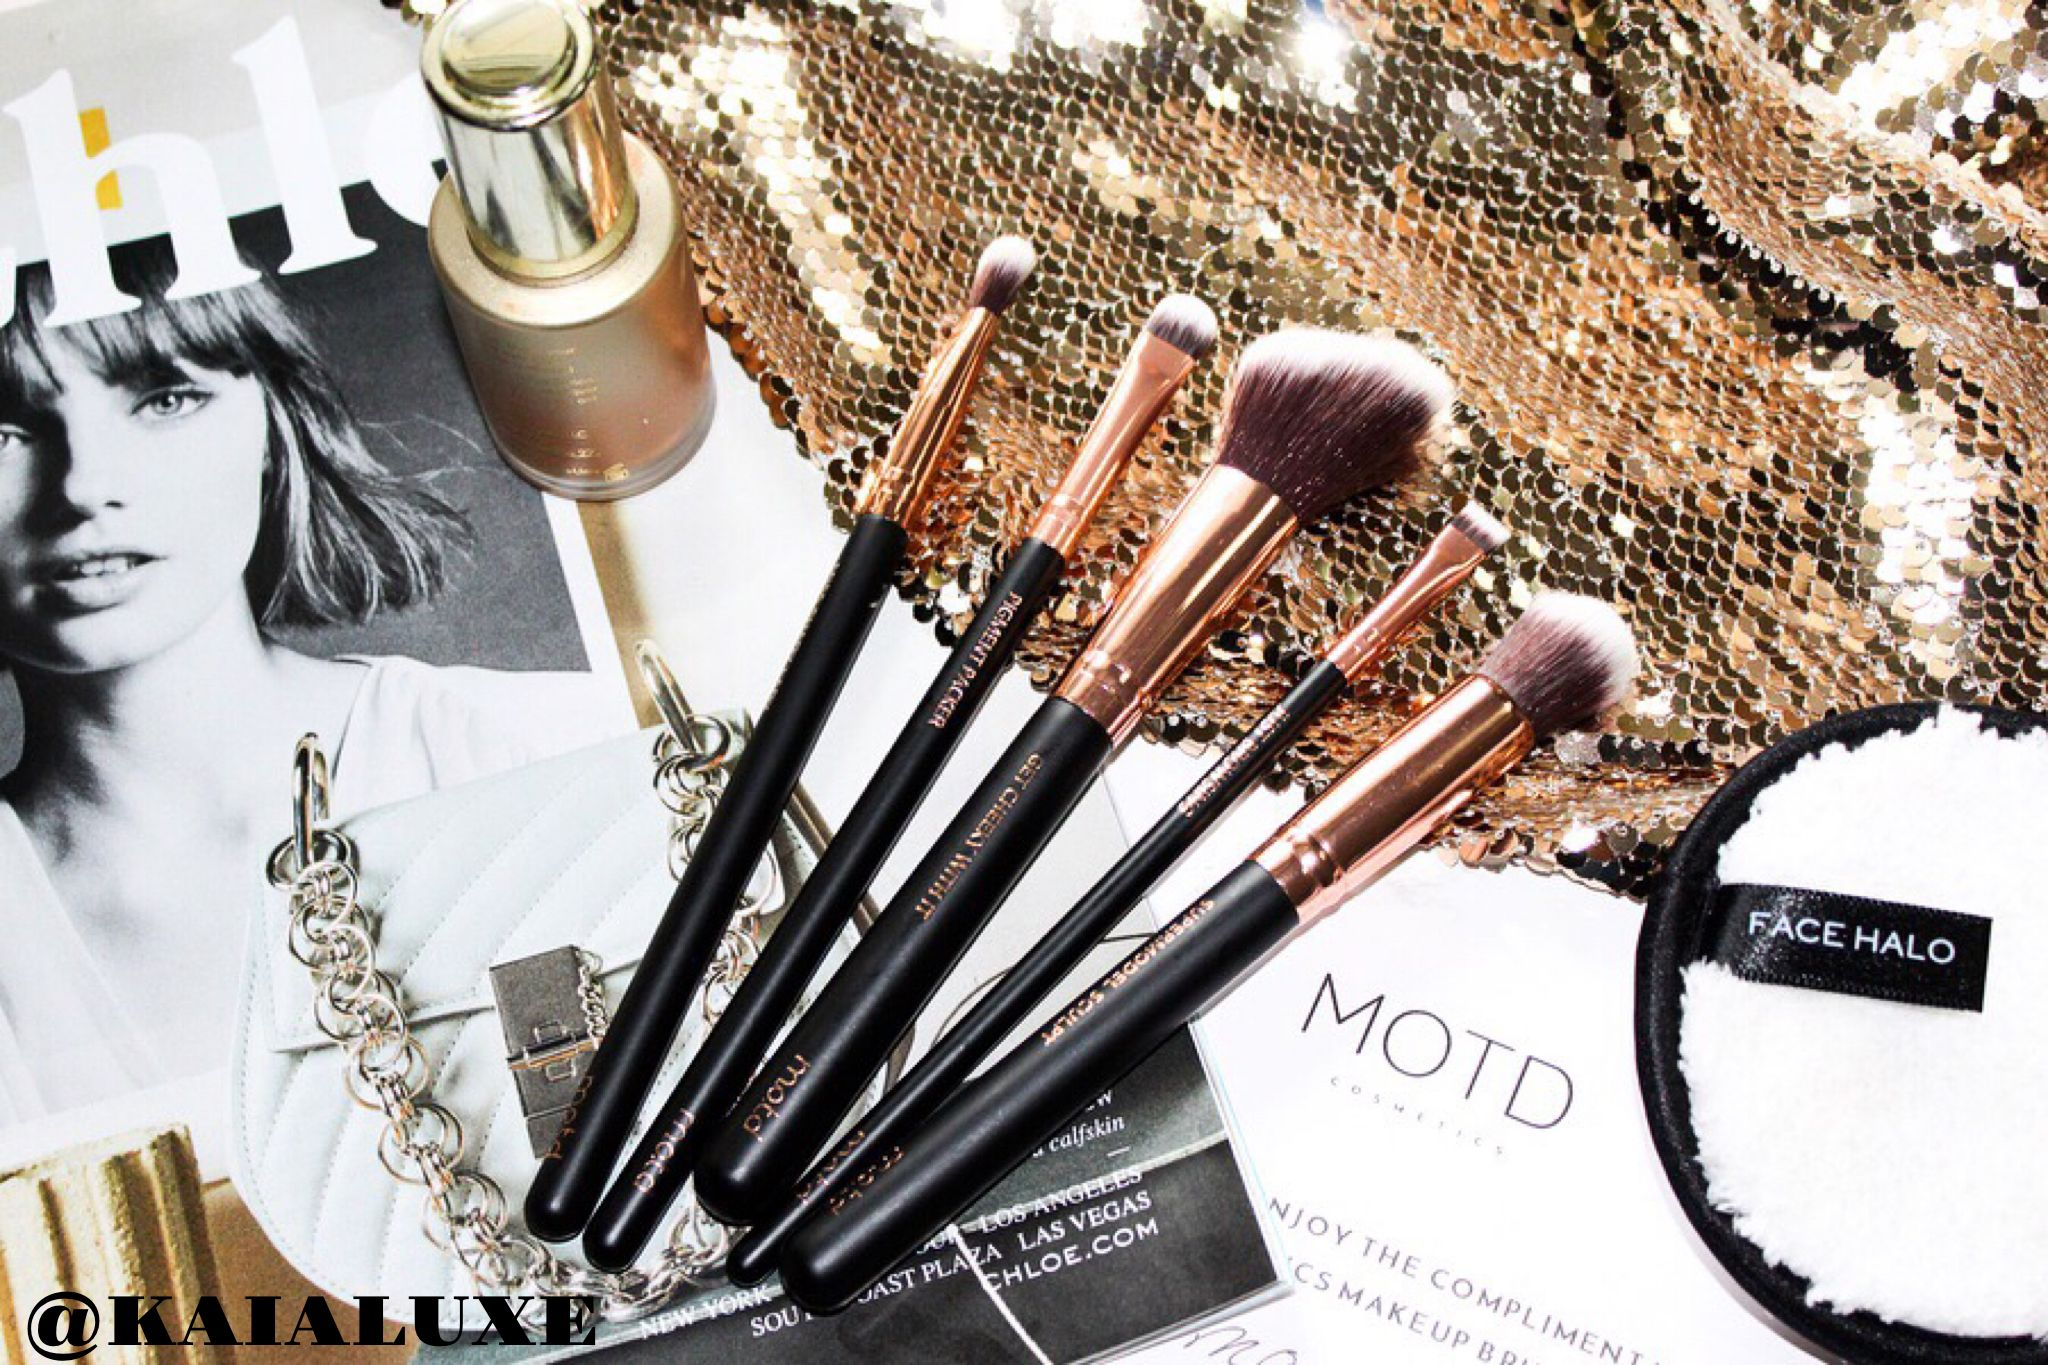 Pin by Kaialuxe on Beauty Cruelty free makeup brushes